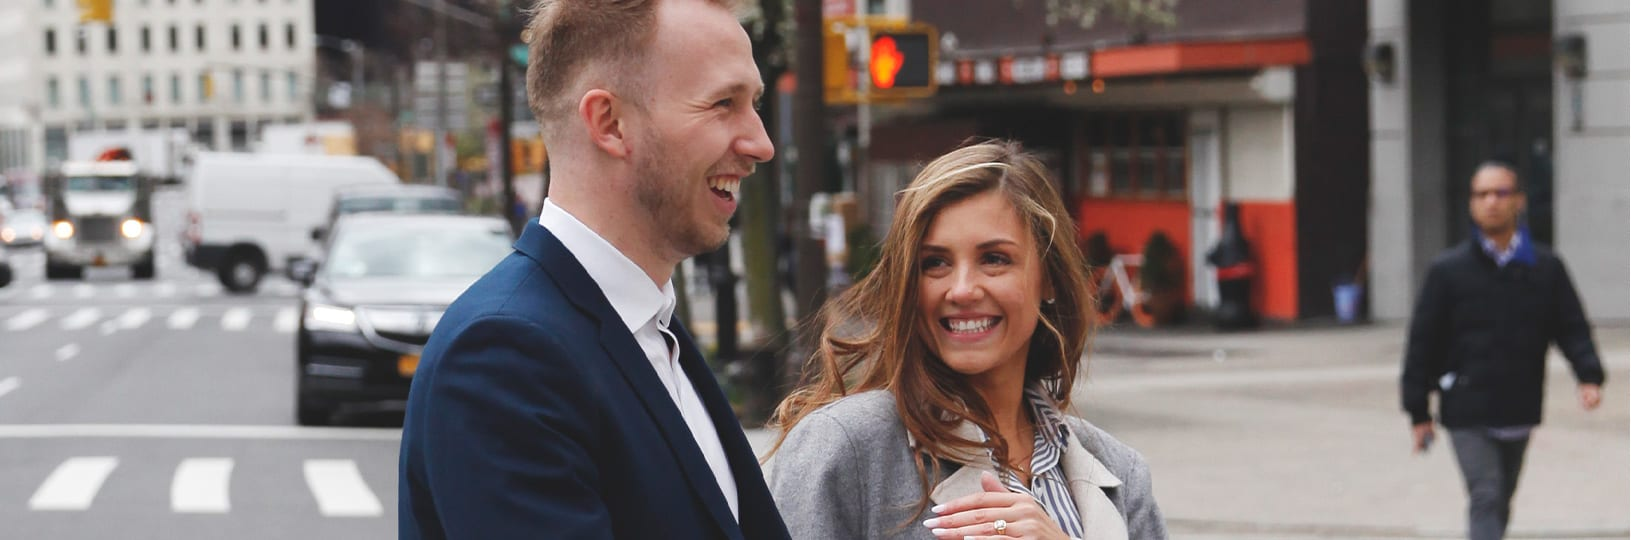 Photo of a newly engaged couple walking the city streets